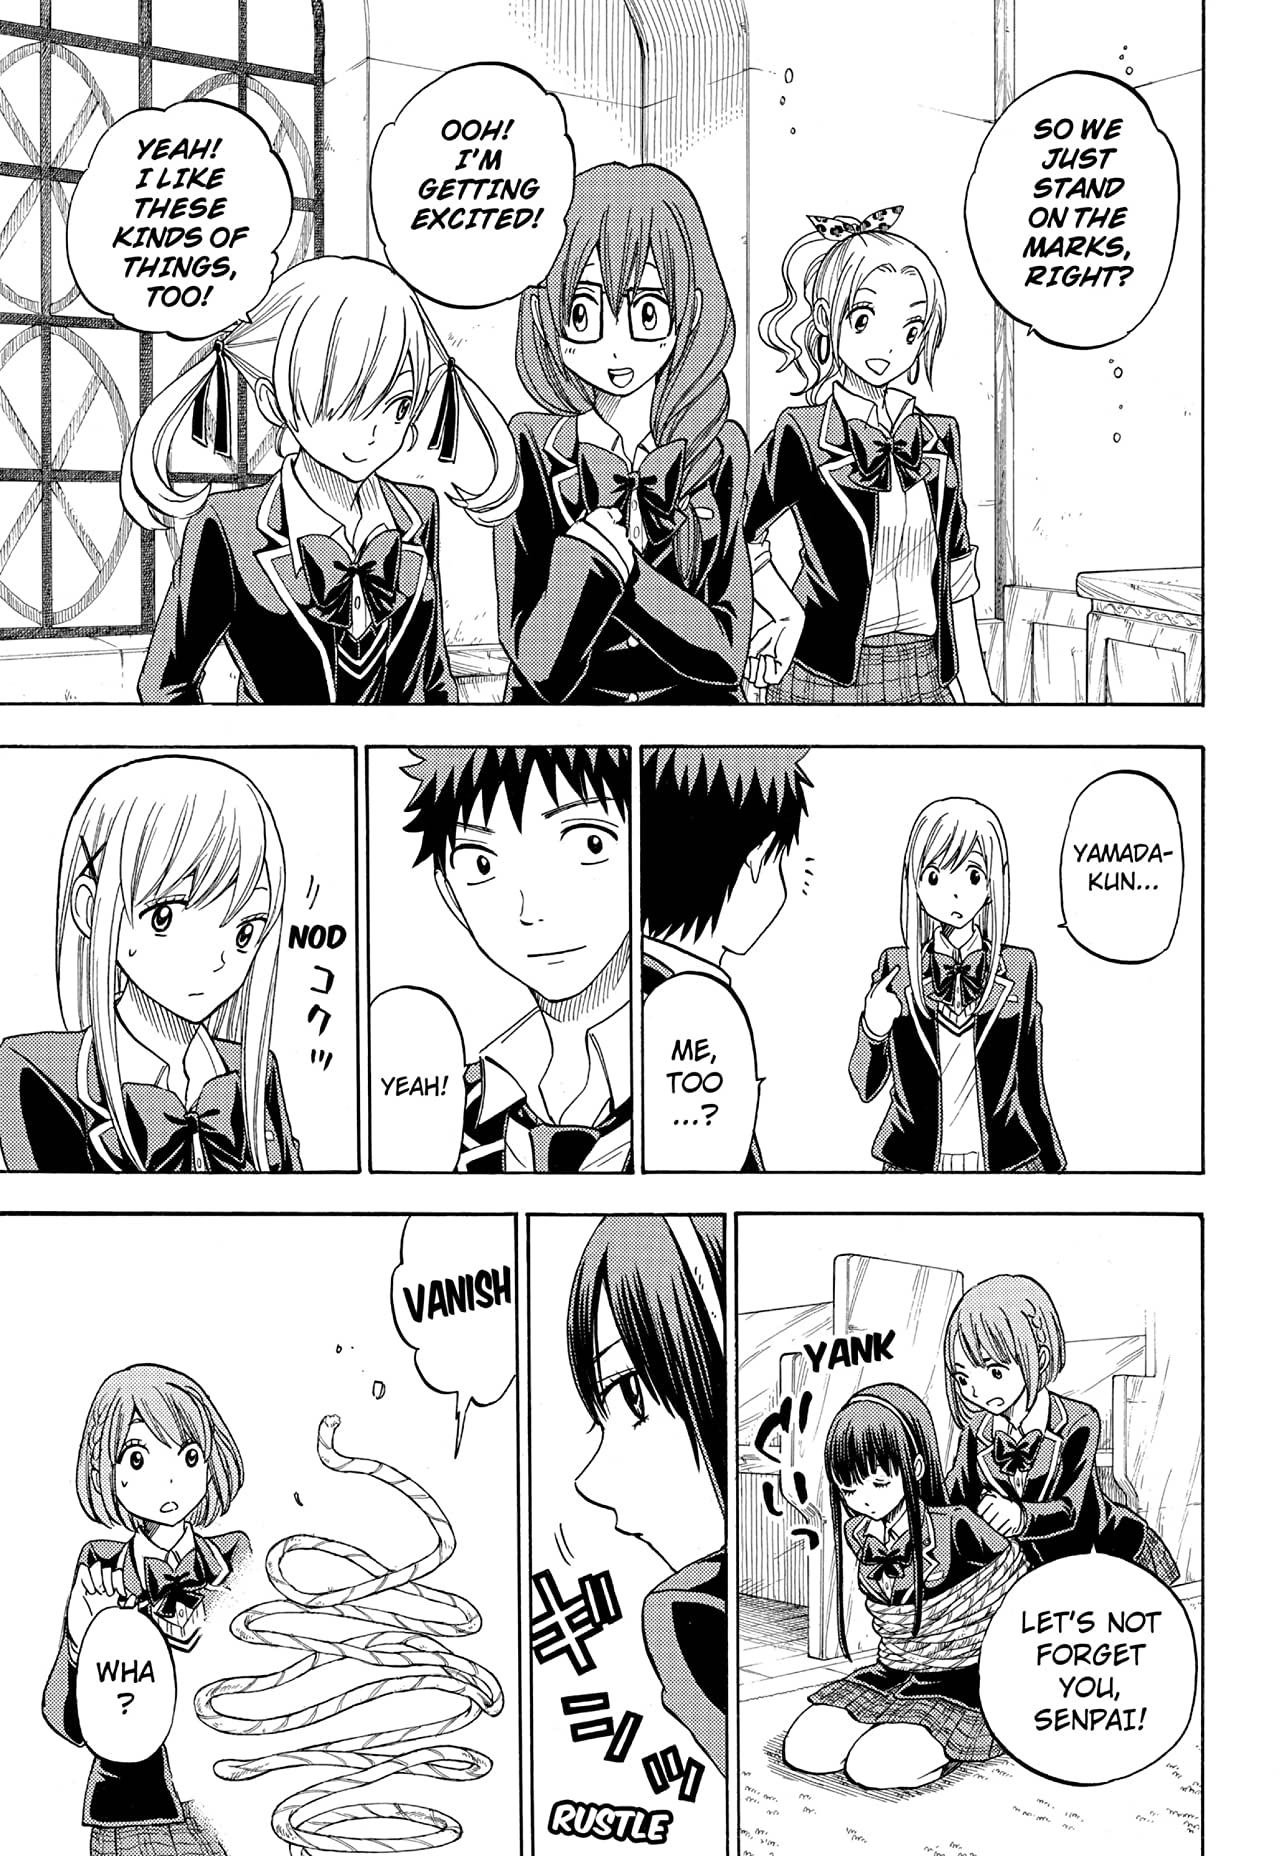 Yamada-kun and the Seven Witches #87